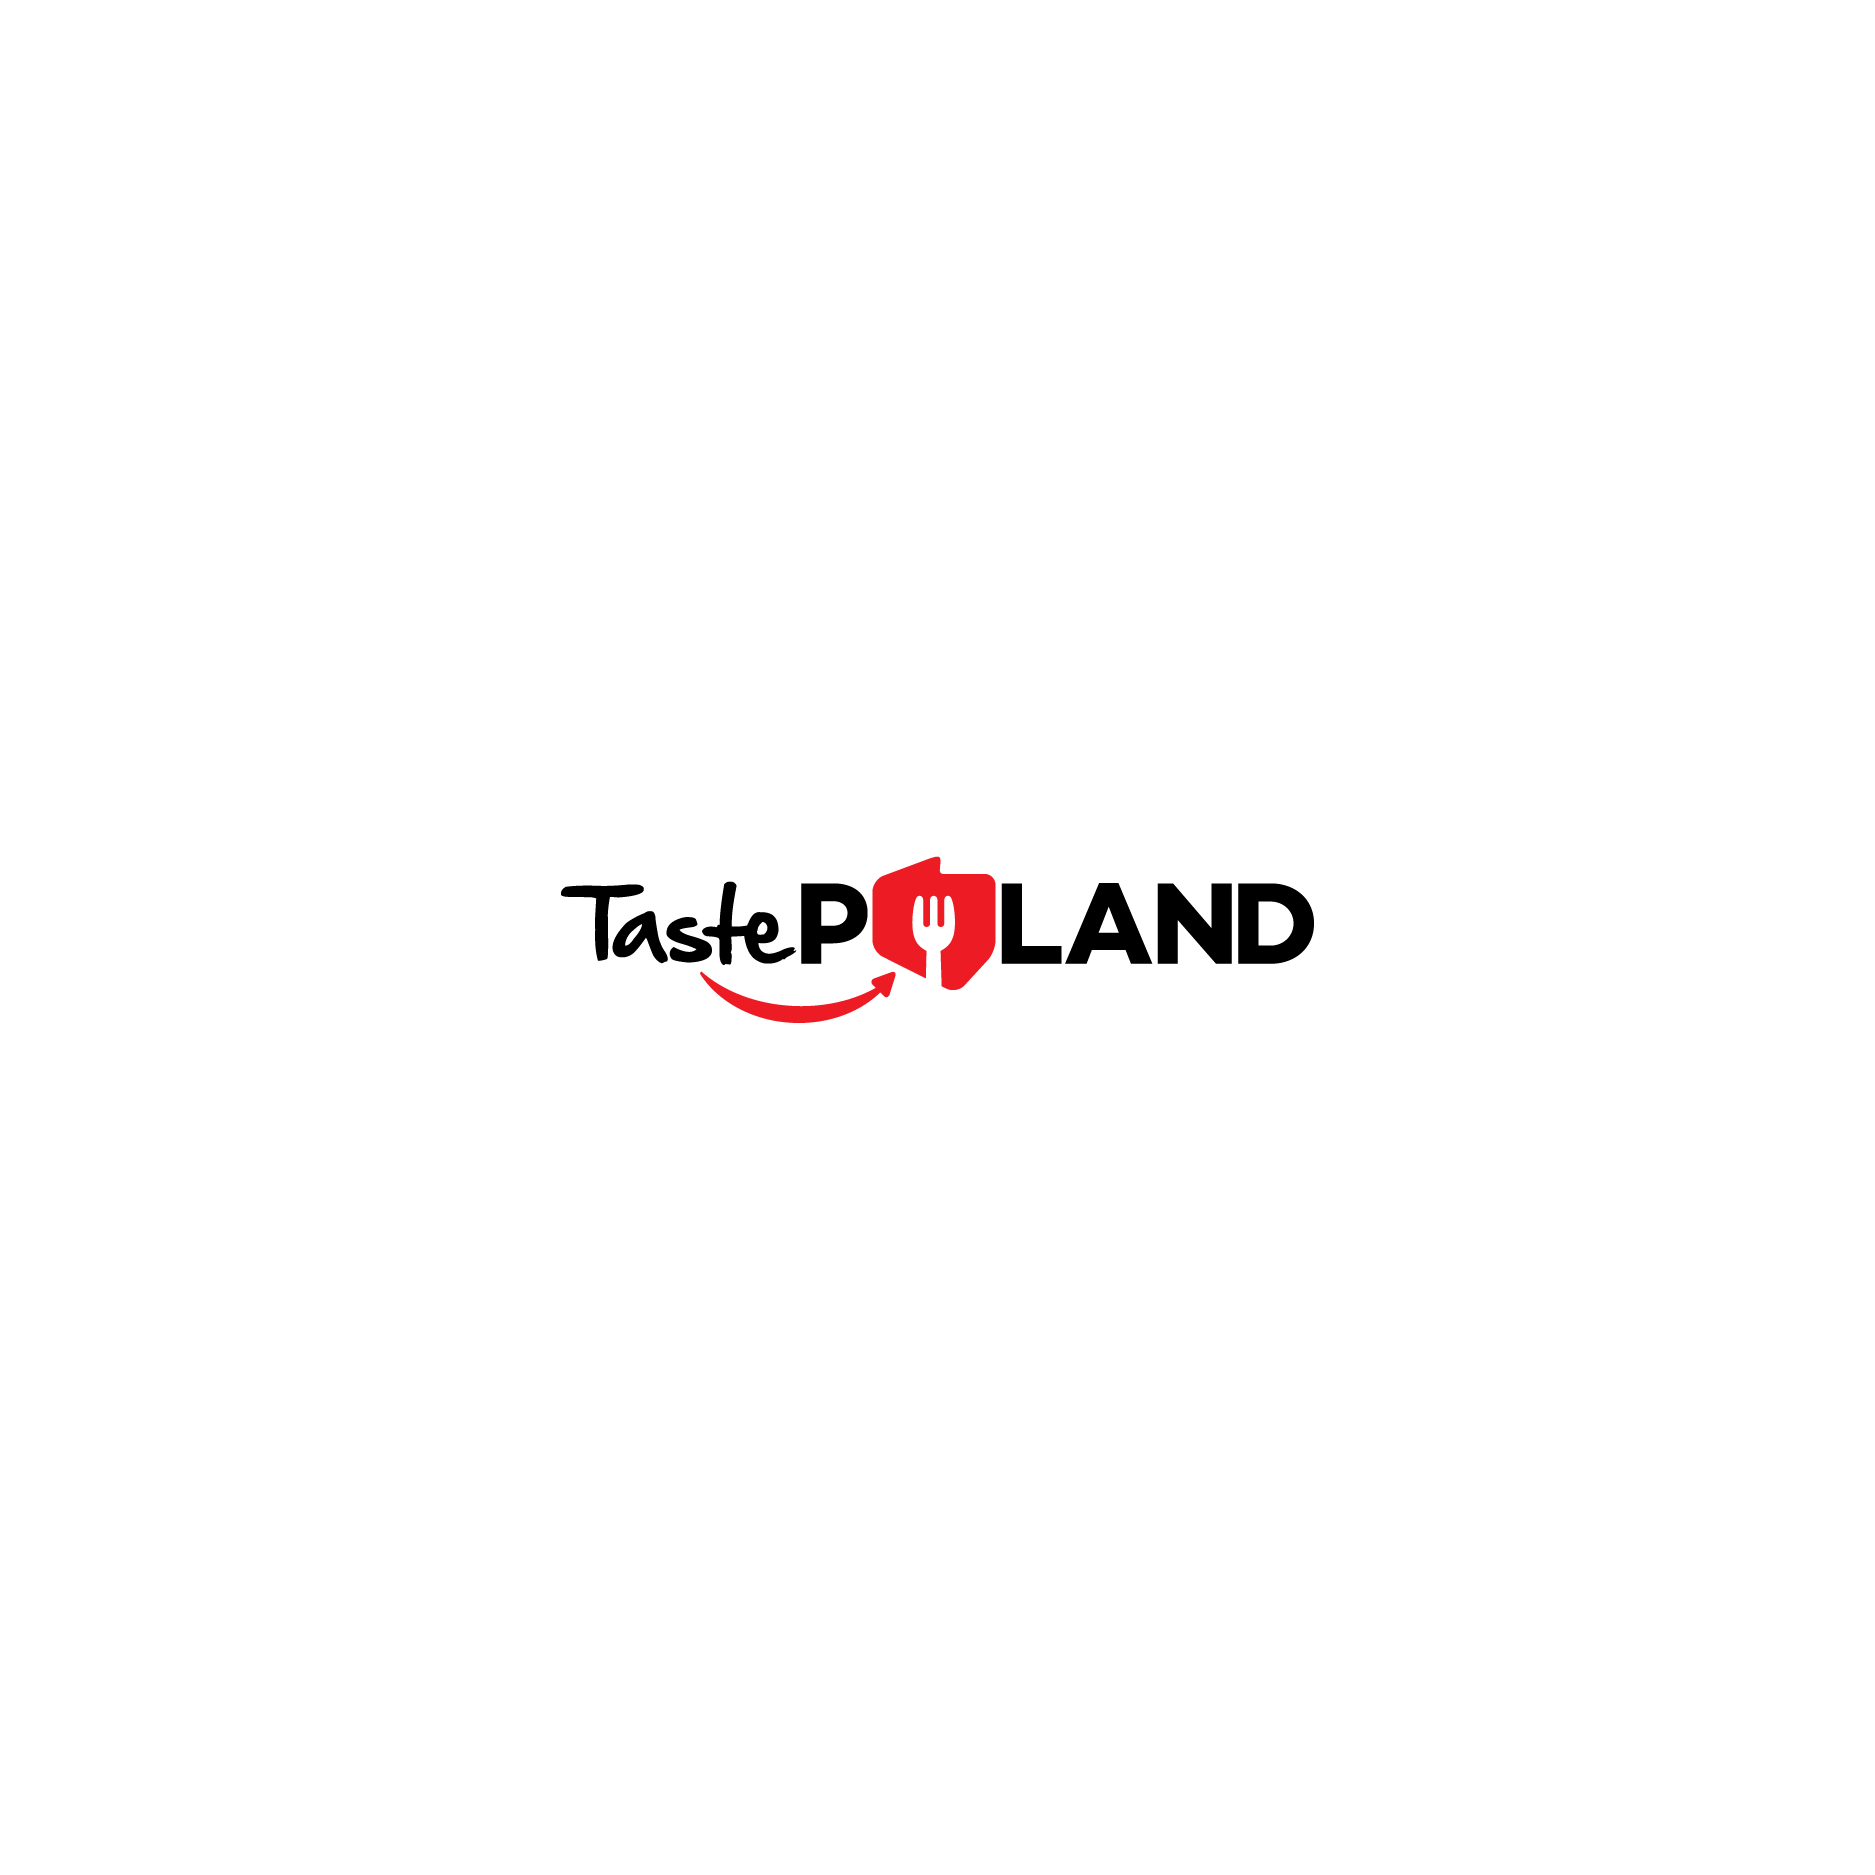 Become part of new food travel portal... Create its logo